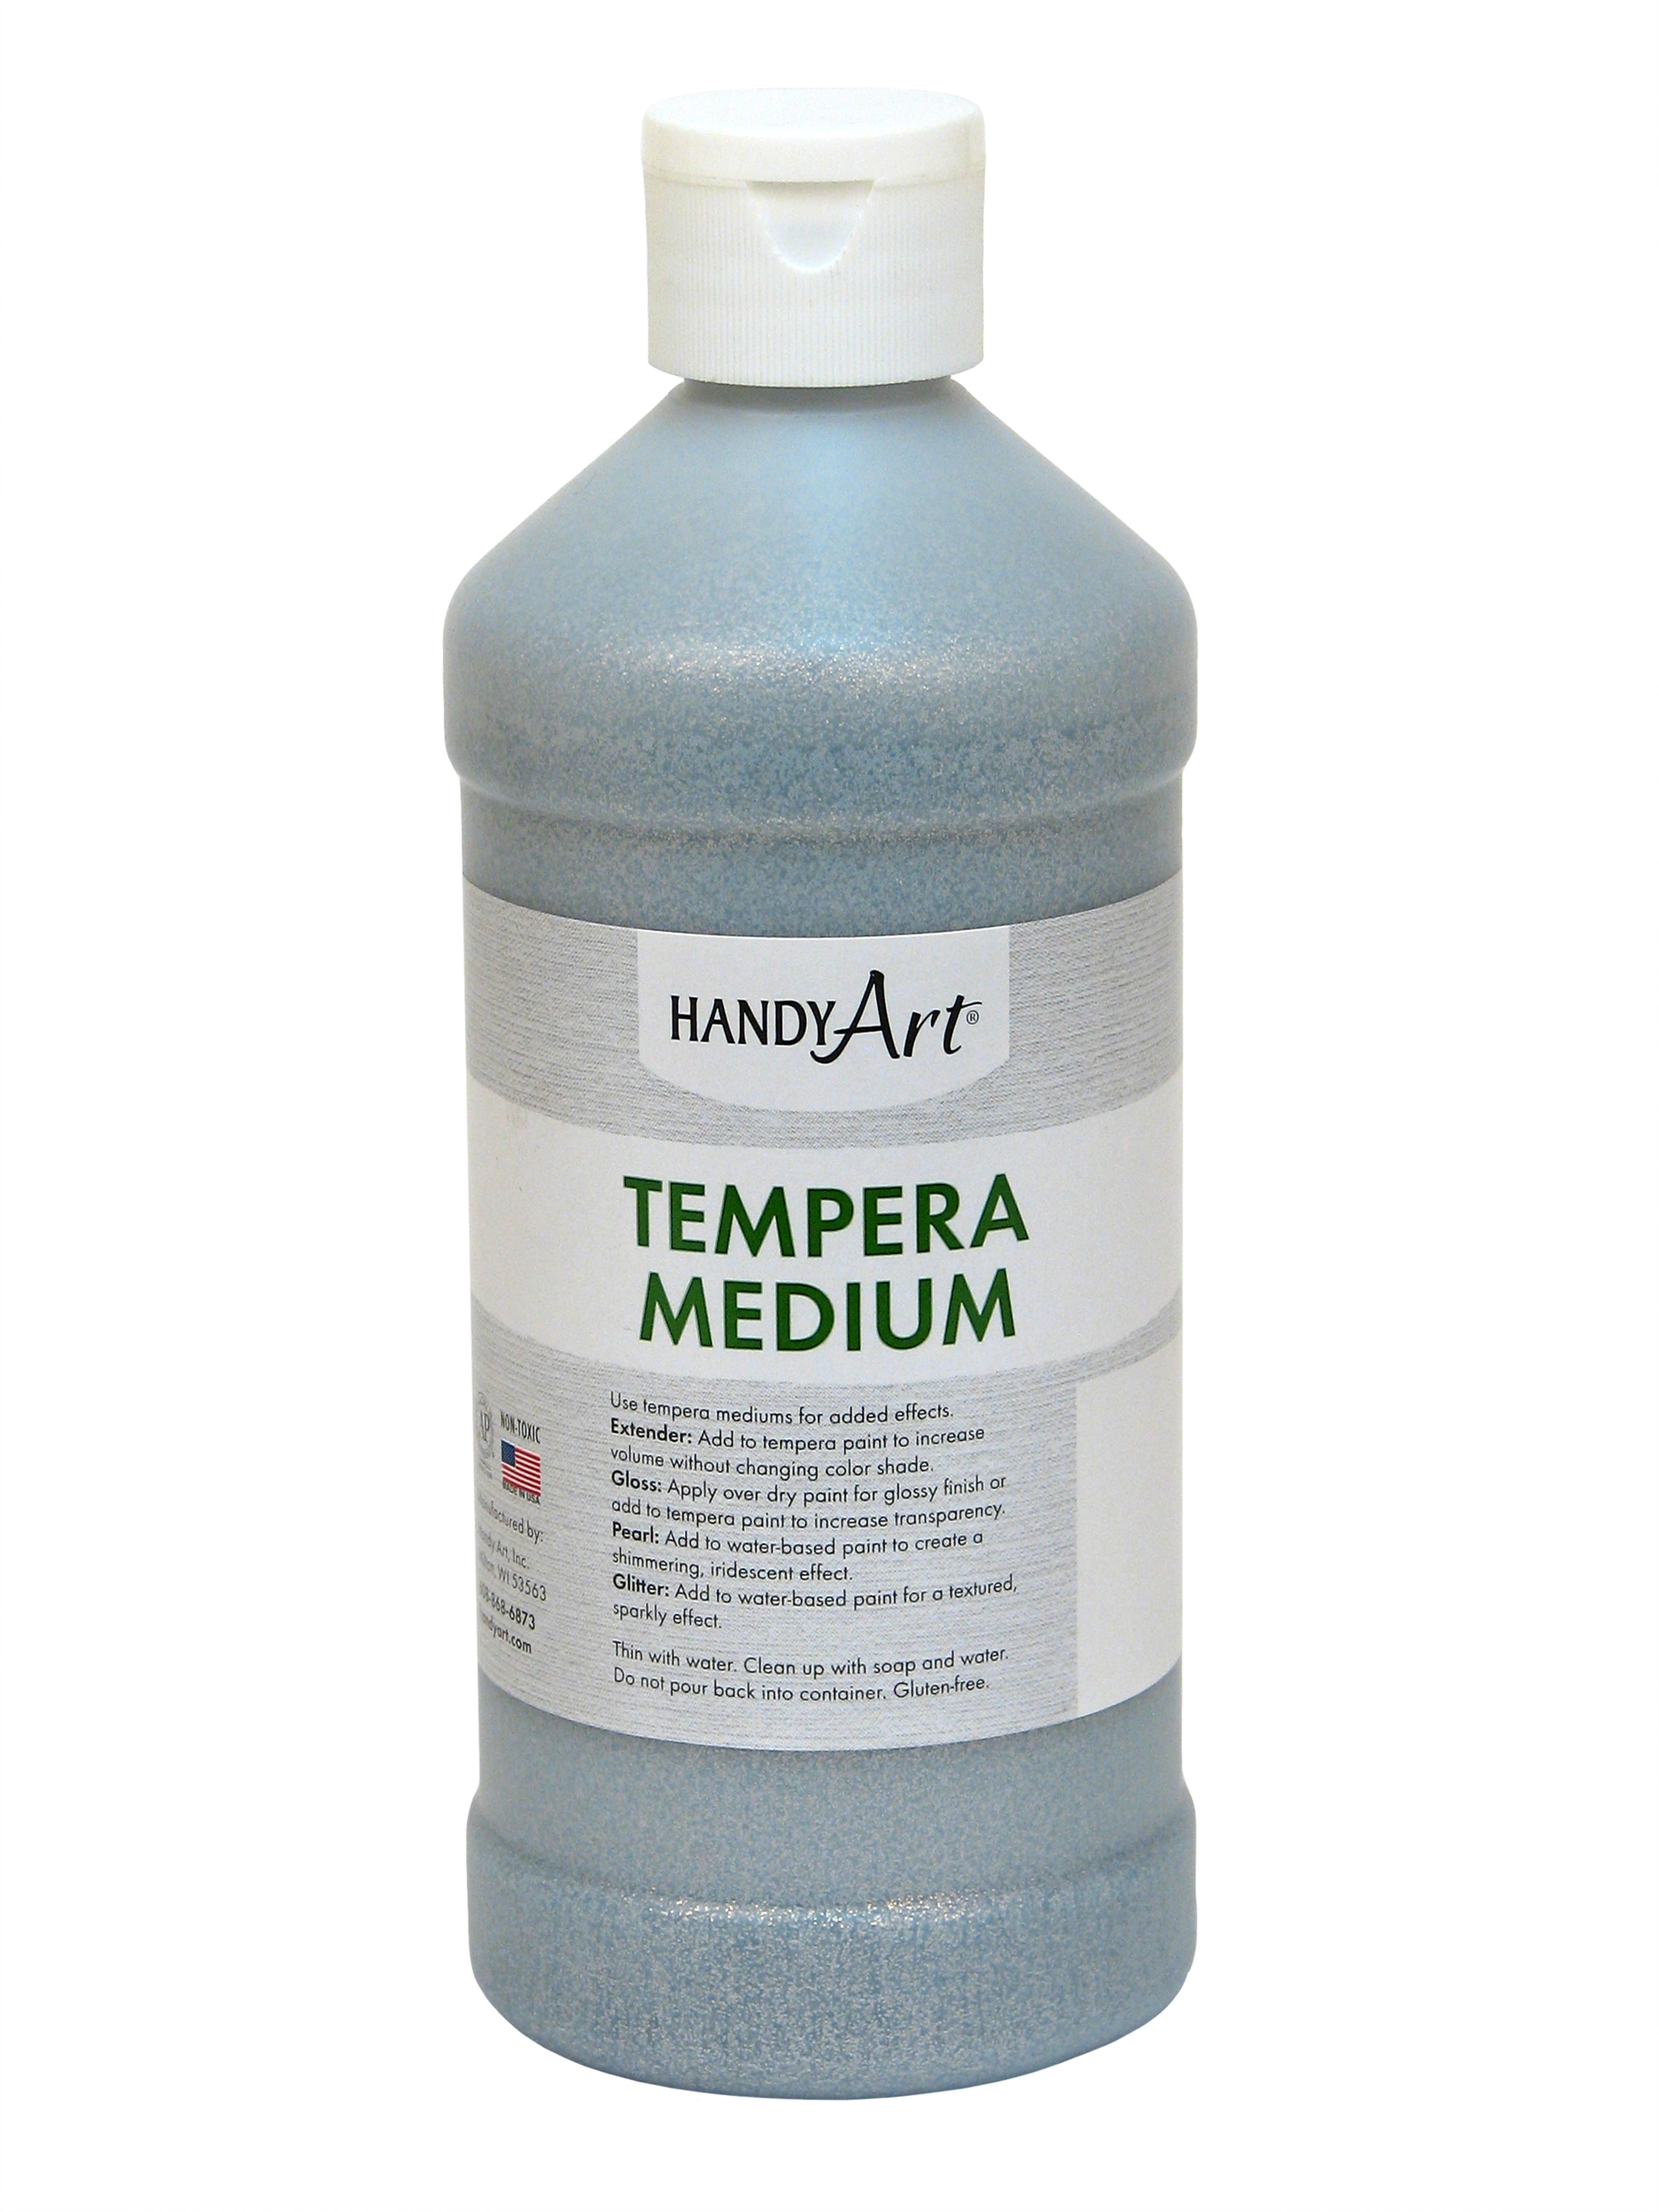 Handy Art Tempera Medium - Glitter, 16 oz